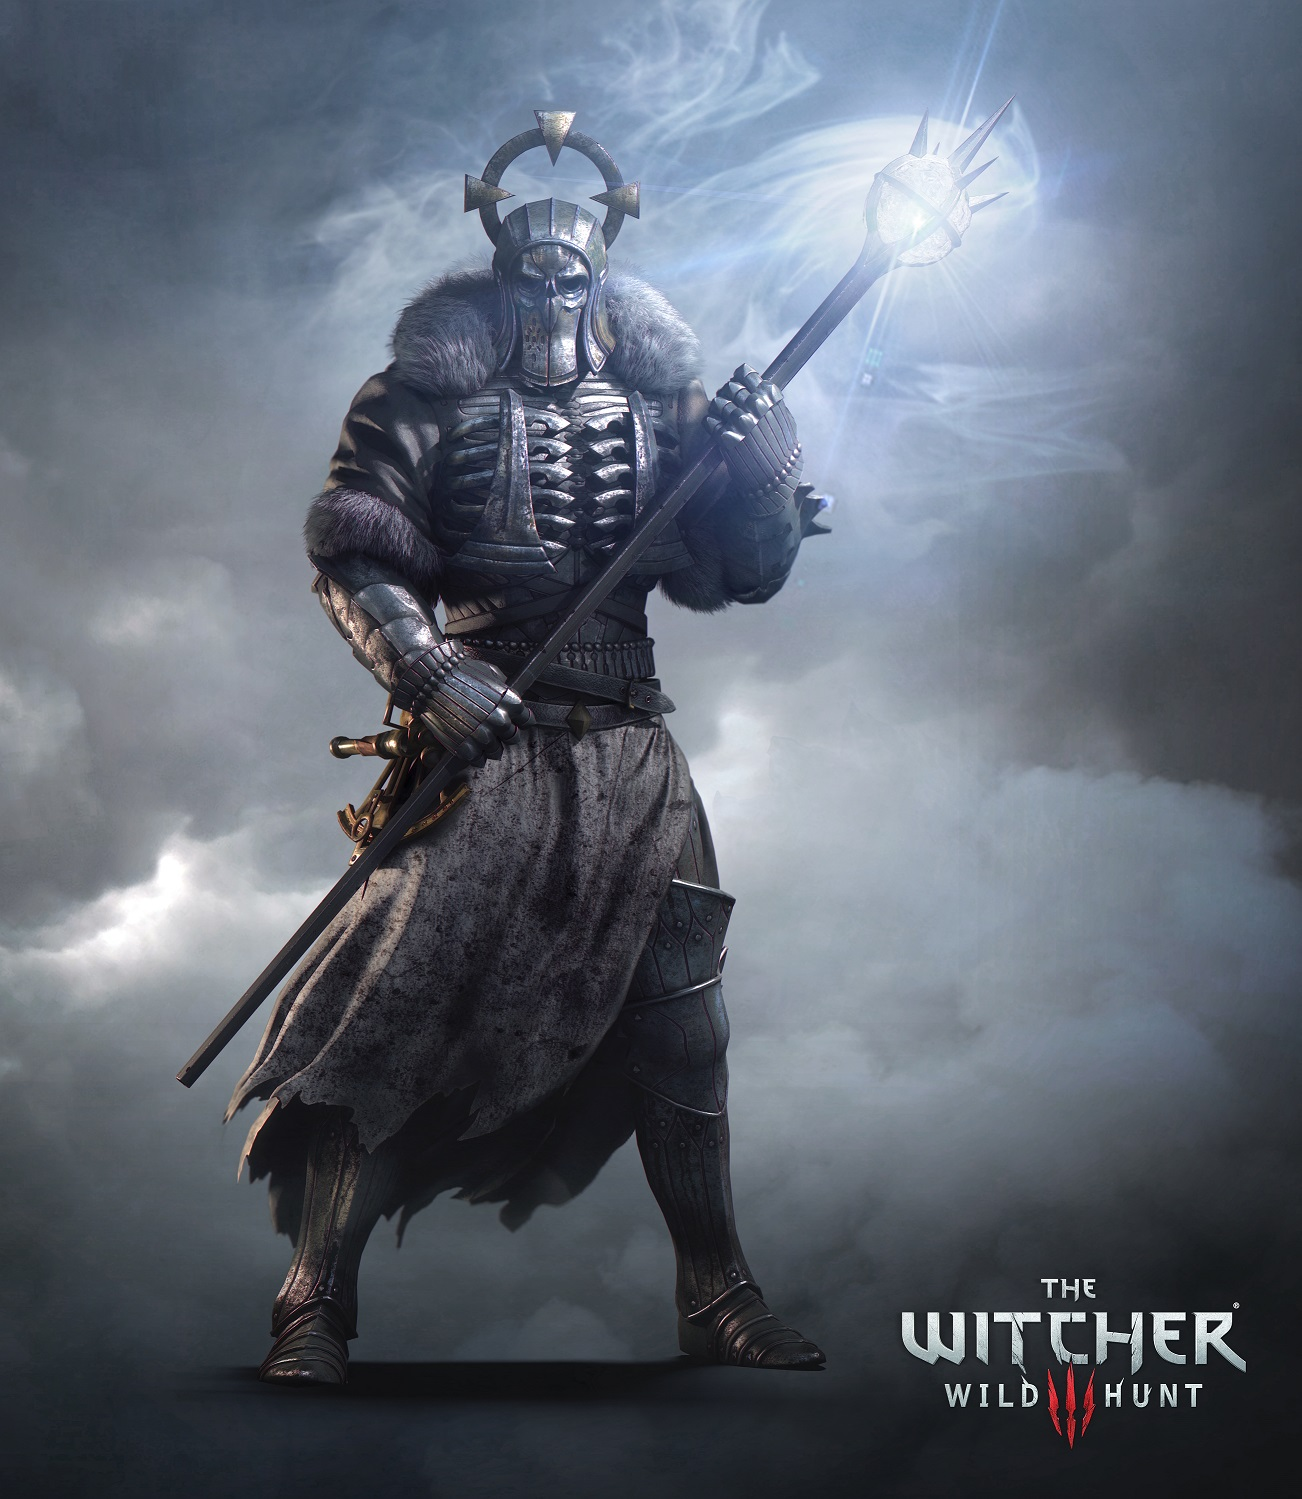 New Gameplay Trailer For The Witcher 3